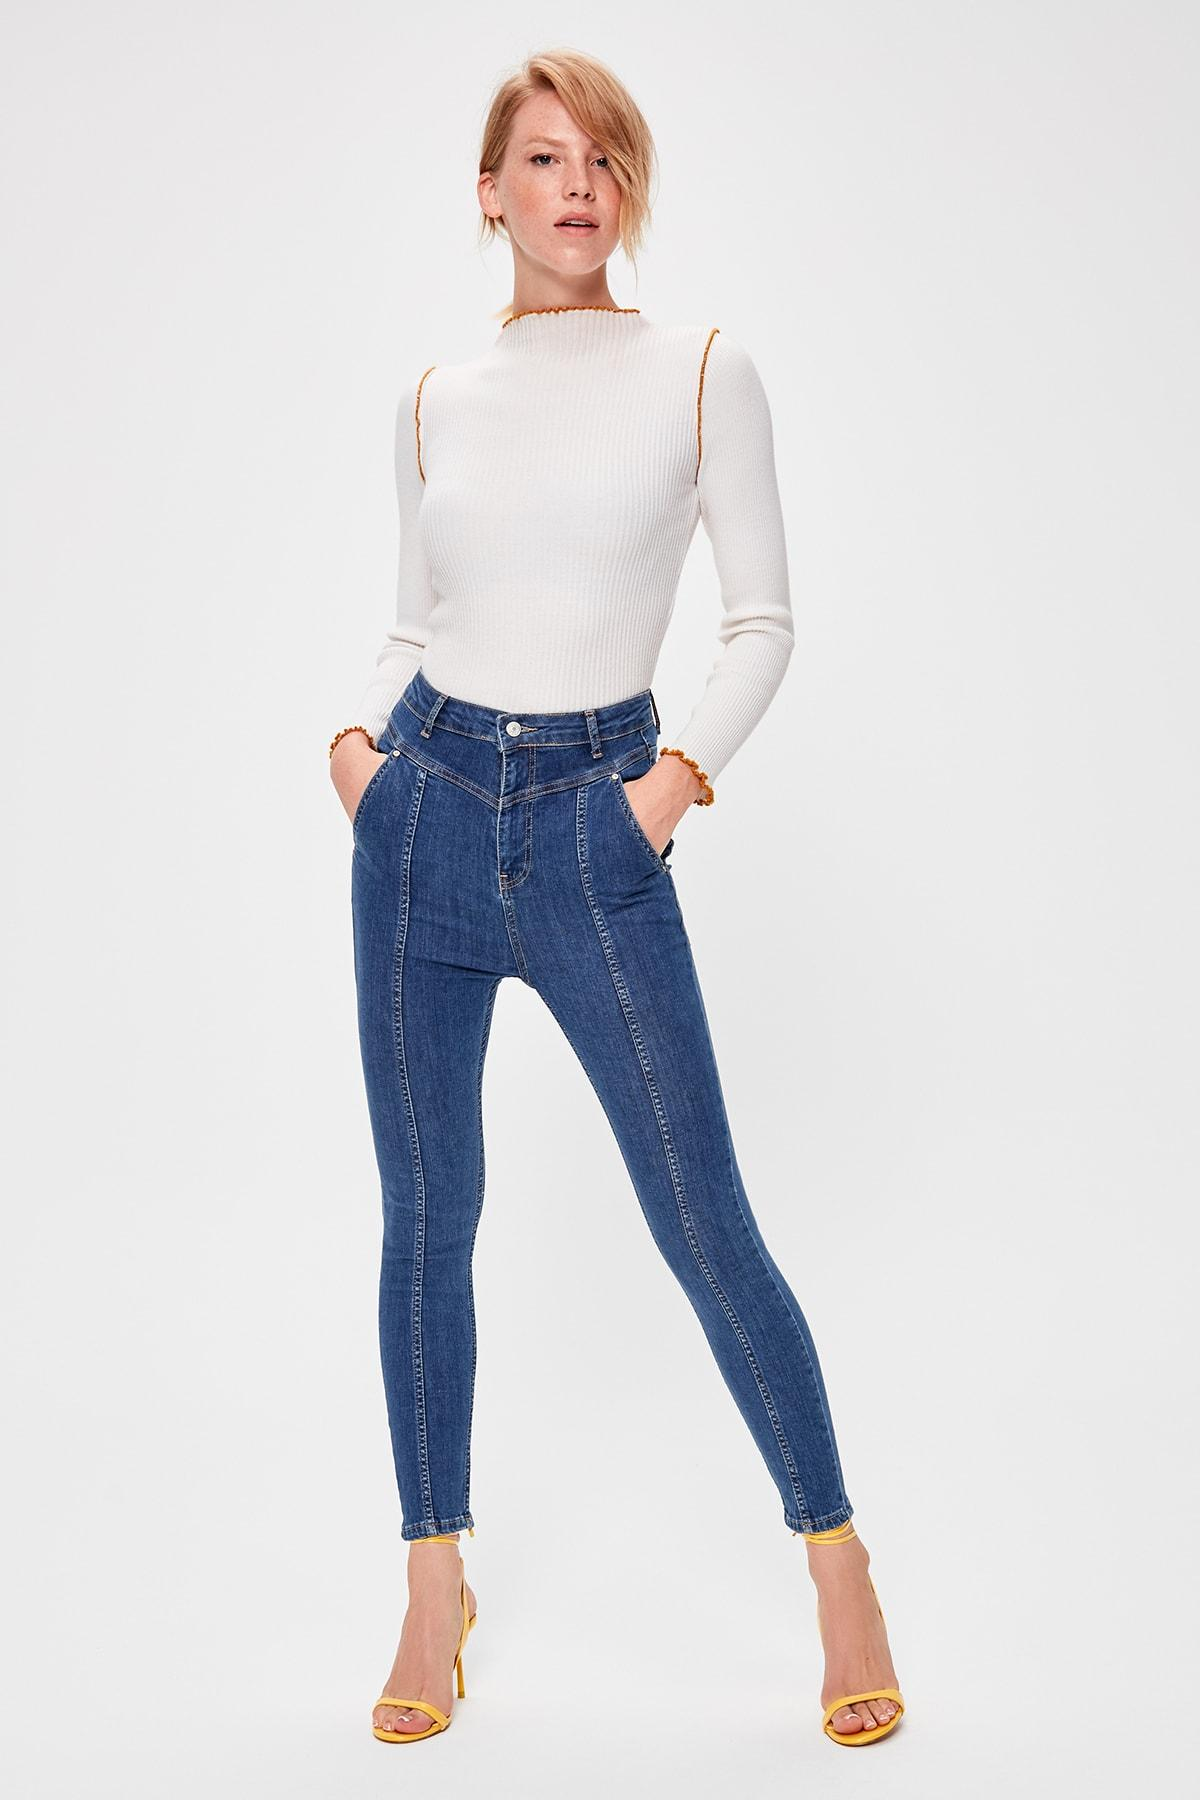 Trendyol Blue Stitch Detail High Waist Skinny Jeans TWOAW20JE0157